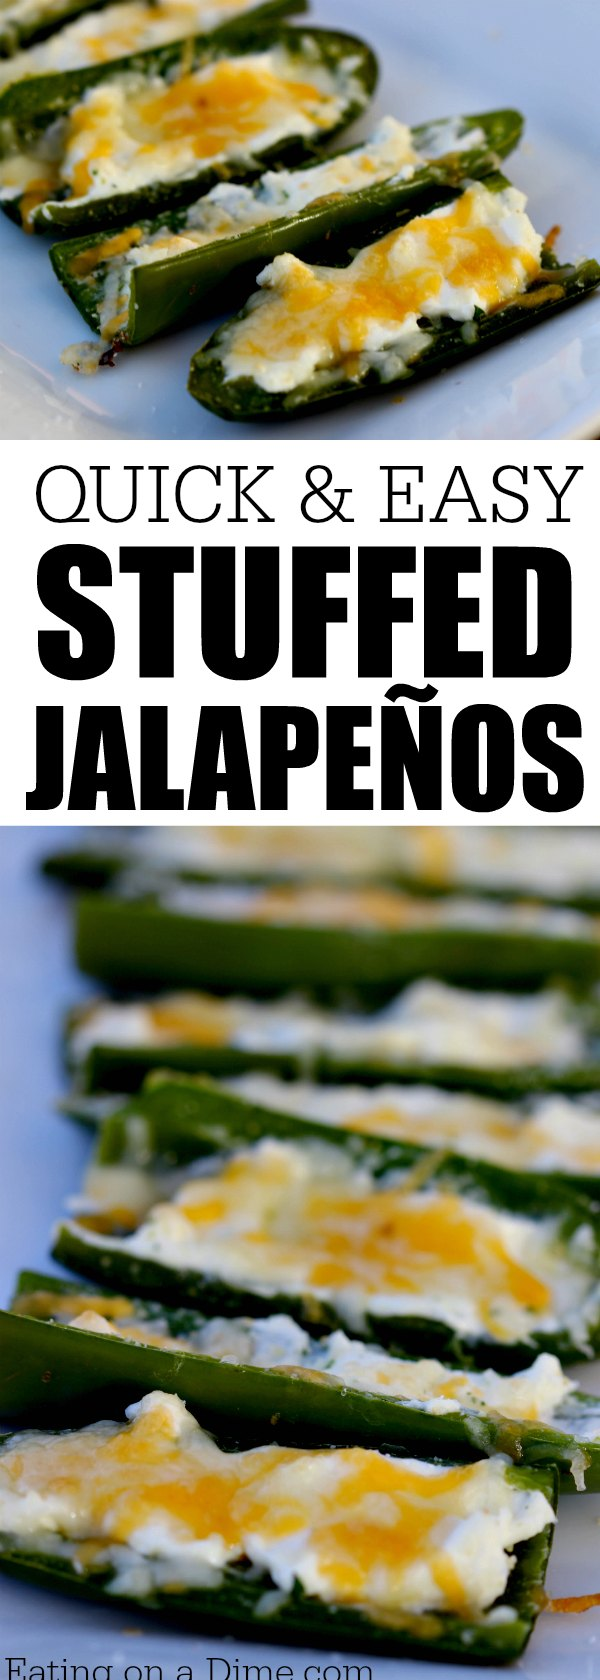 Do you need a quick and easy snack? This cheese-filled jalapeño pepper recipe will be your new favorite recipe for stuffed jalapeño peppers. It's easy to do and everyone loves them!